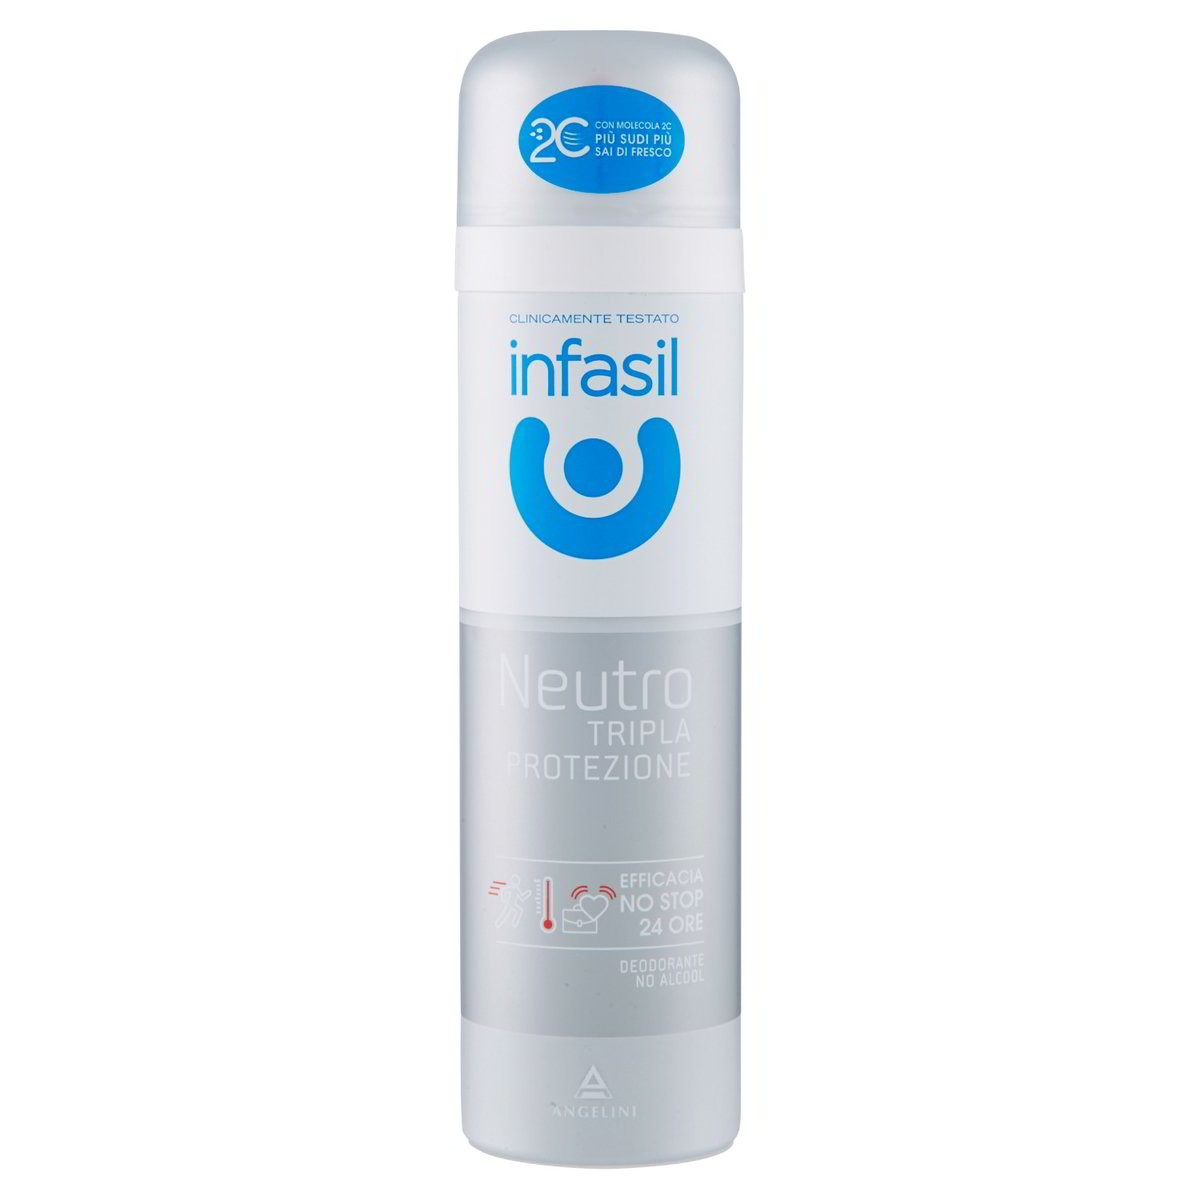 Infasil Deodorante spray Neutro